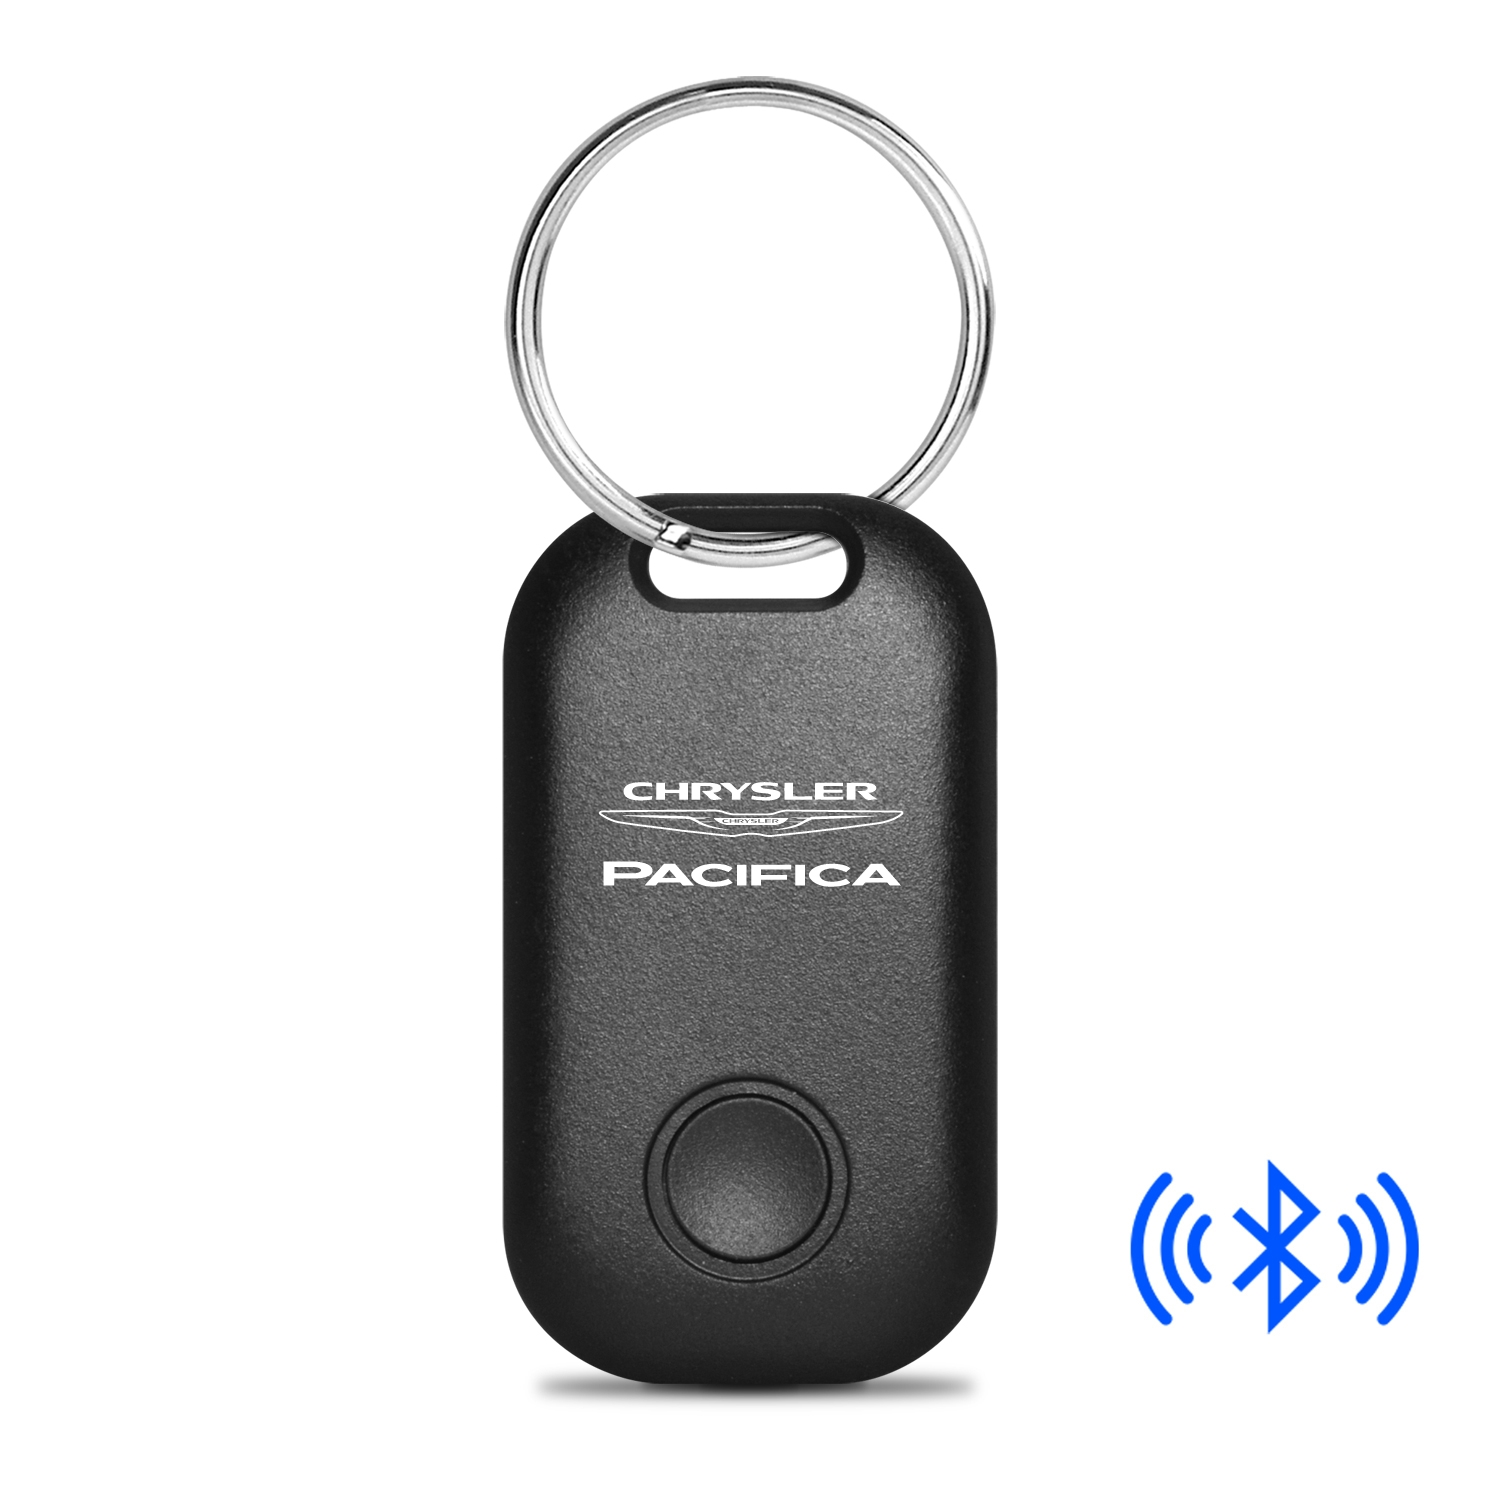 Chrysler Pacifica Bluetooth Smart Key Finder Black Key Chain